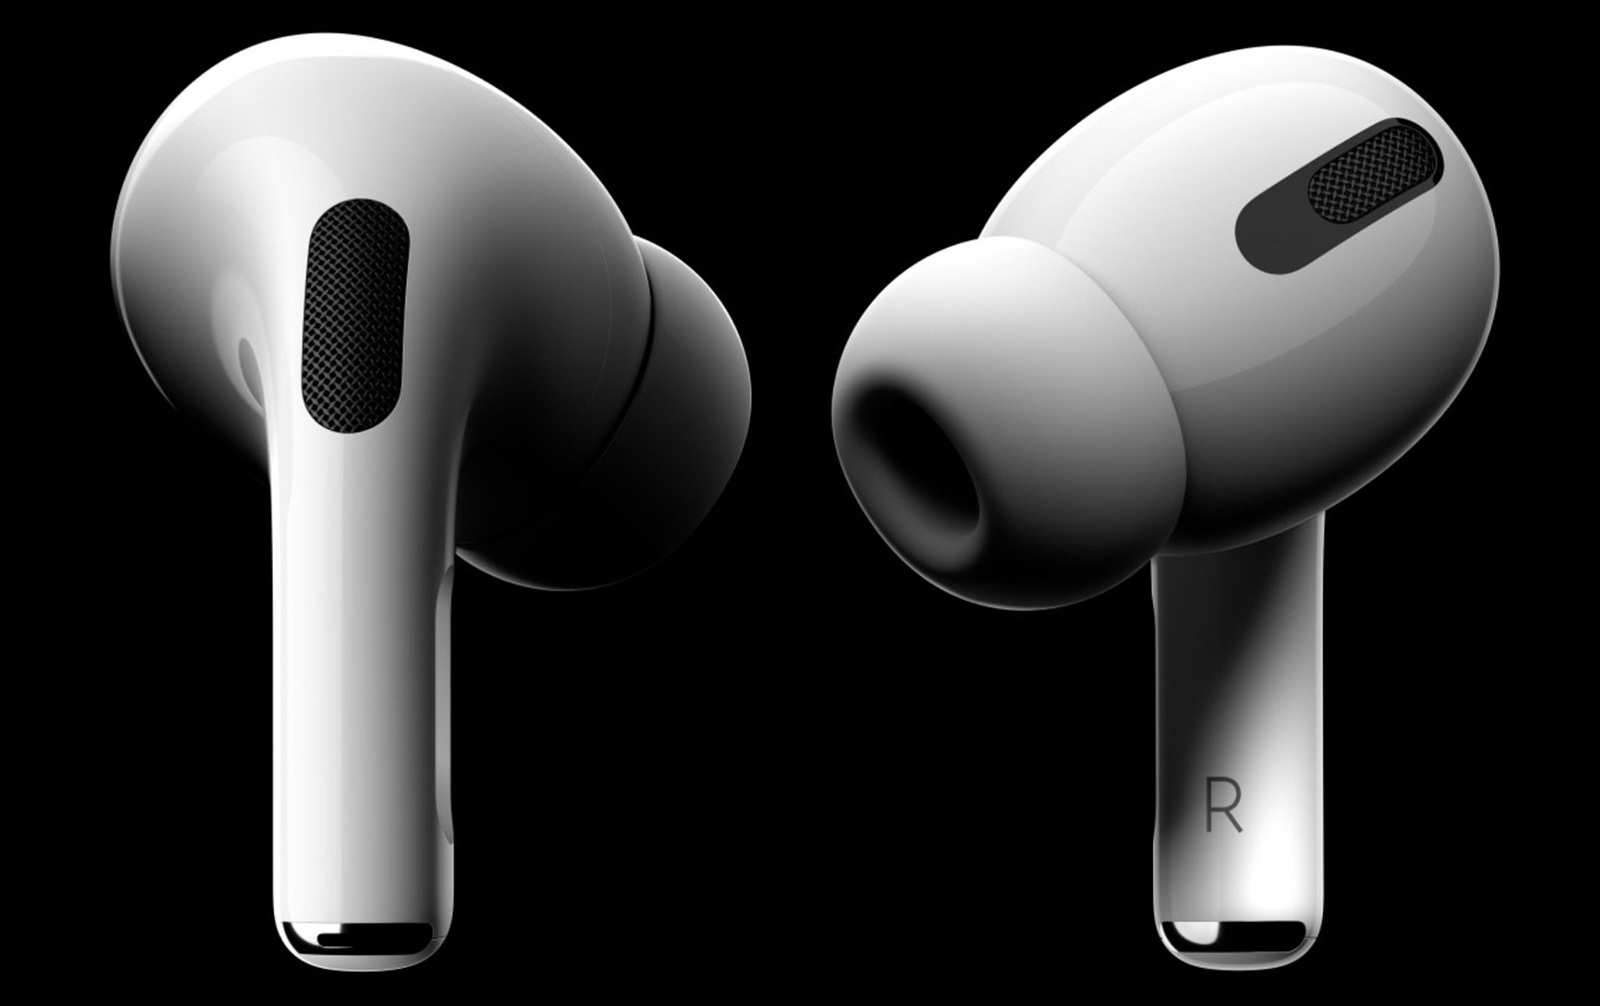 Airpods Pro Are 199 And Airpods 2 Are 128 In Amazon S Black Friday 2020 Sale Bgr